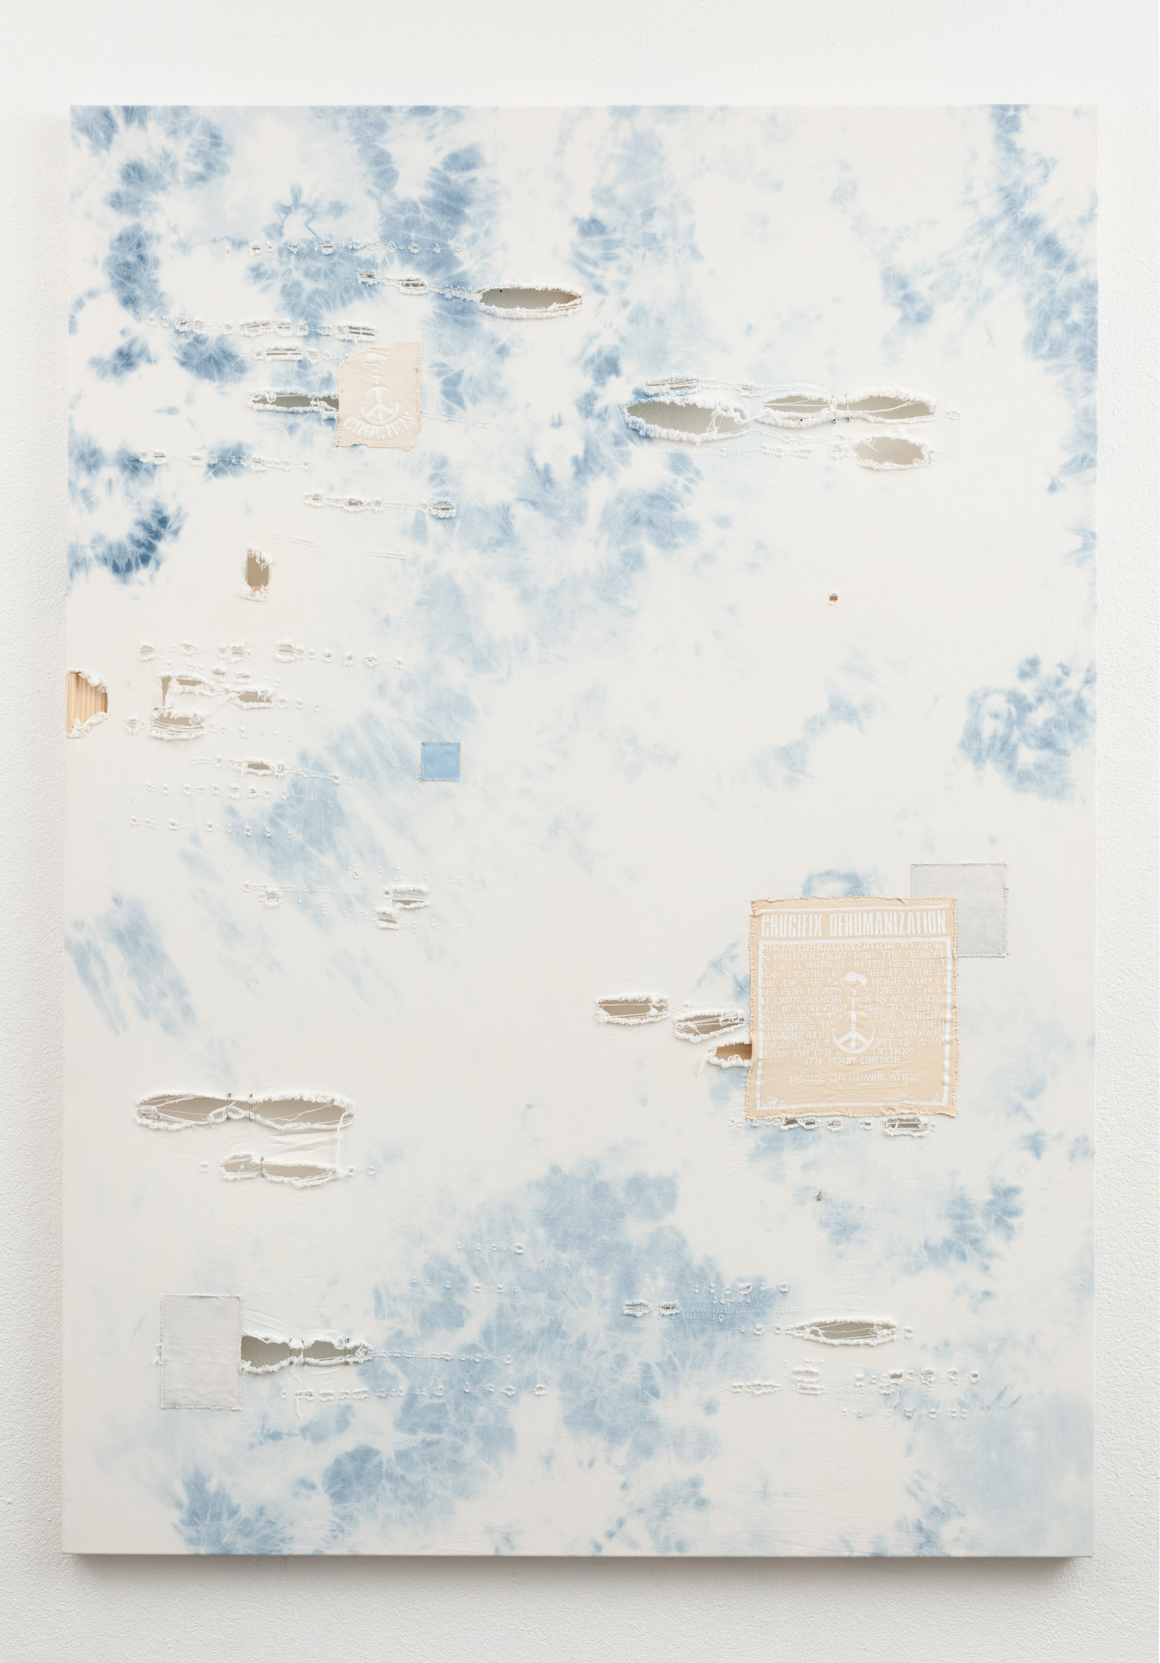 "<p><span class=""name"">Zach Reini</span><br><em>Untitled Crucifix (Power Is Power)</em><span class='media'>Bleach, dental floss, safety pins, canvas patches on denim</span>76 x 54 in  (193 x 137.2 cm)<br>2015<br></p>"